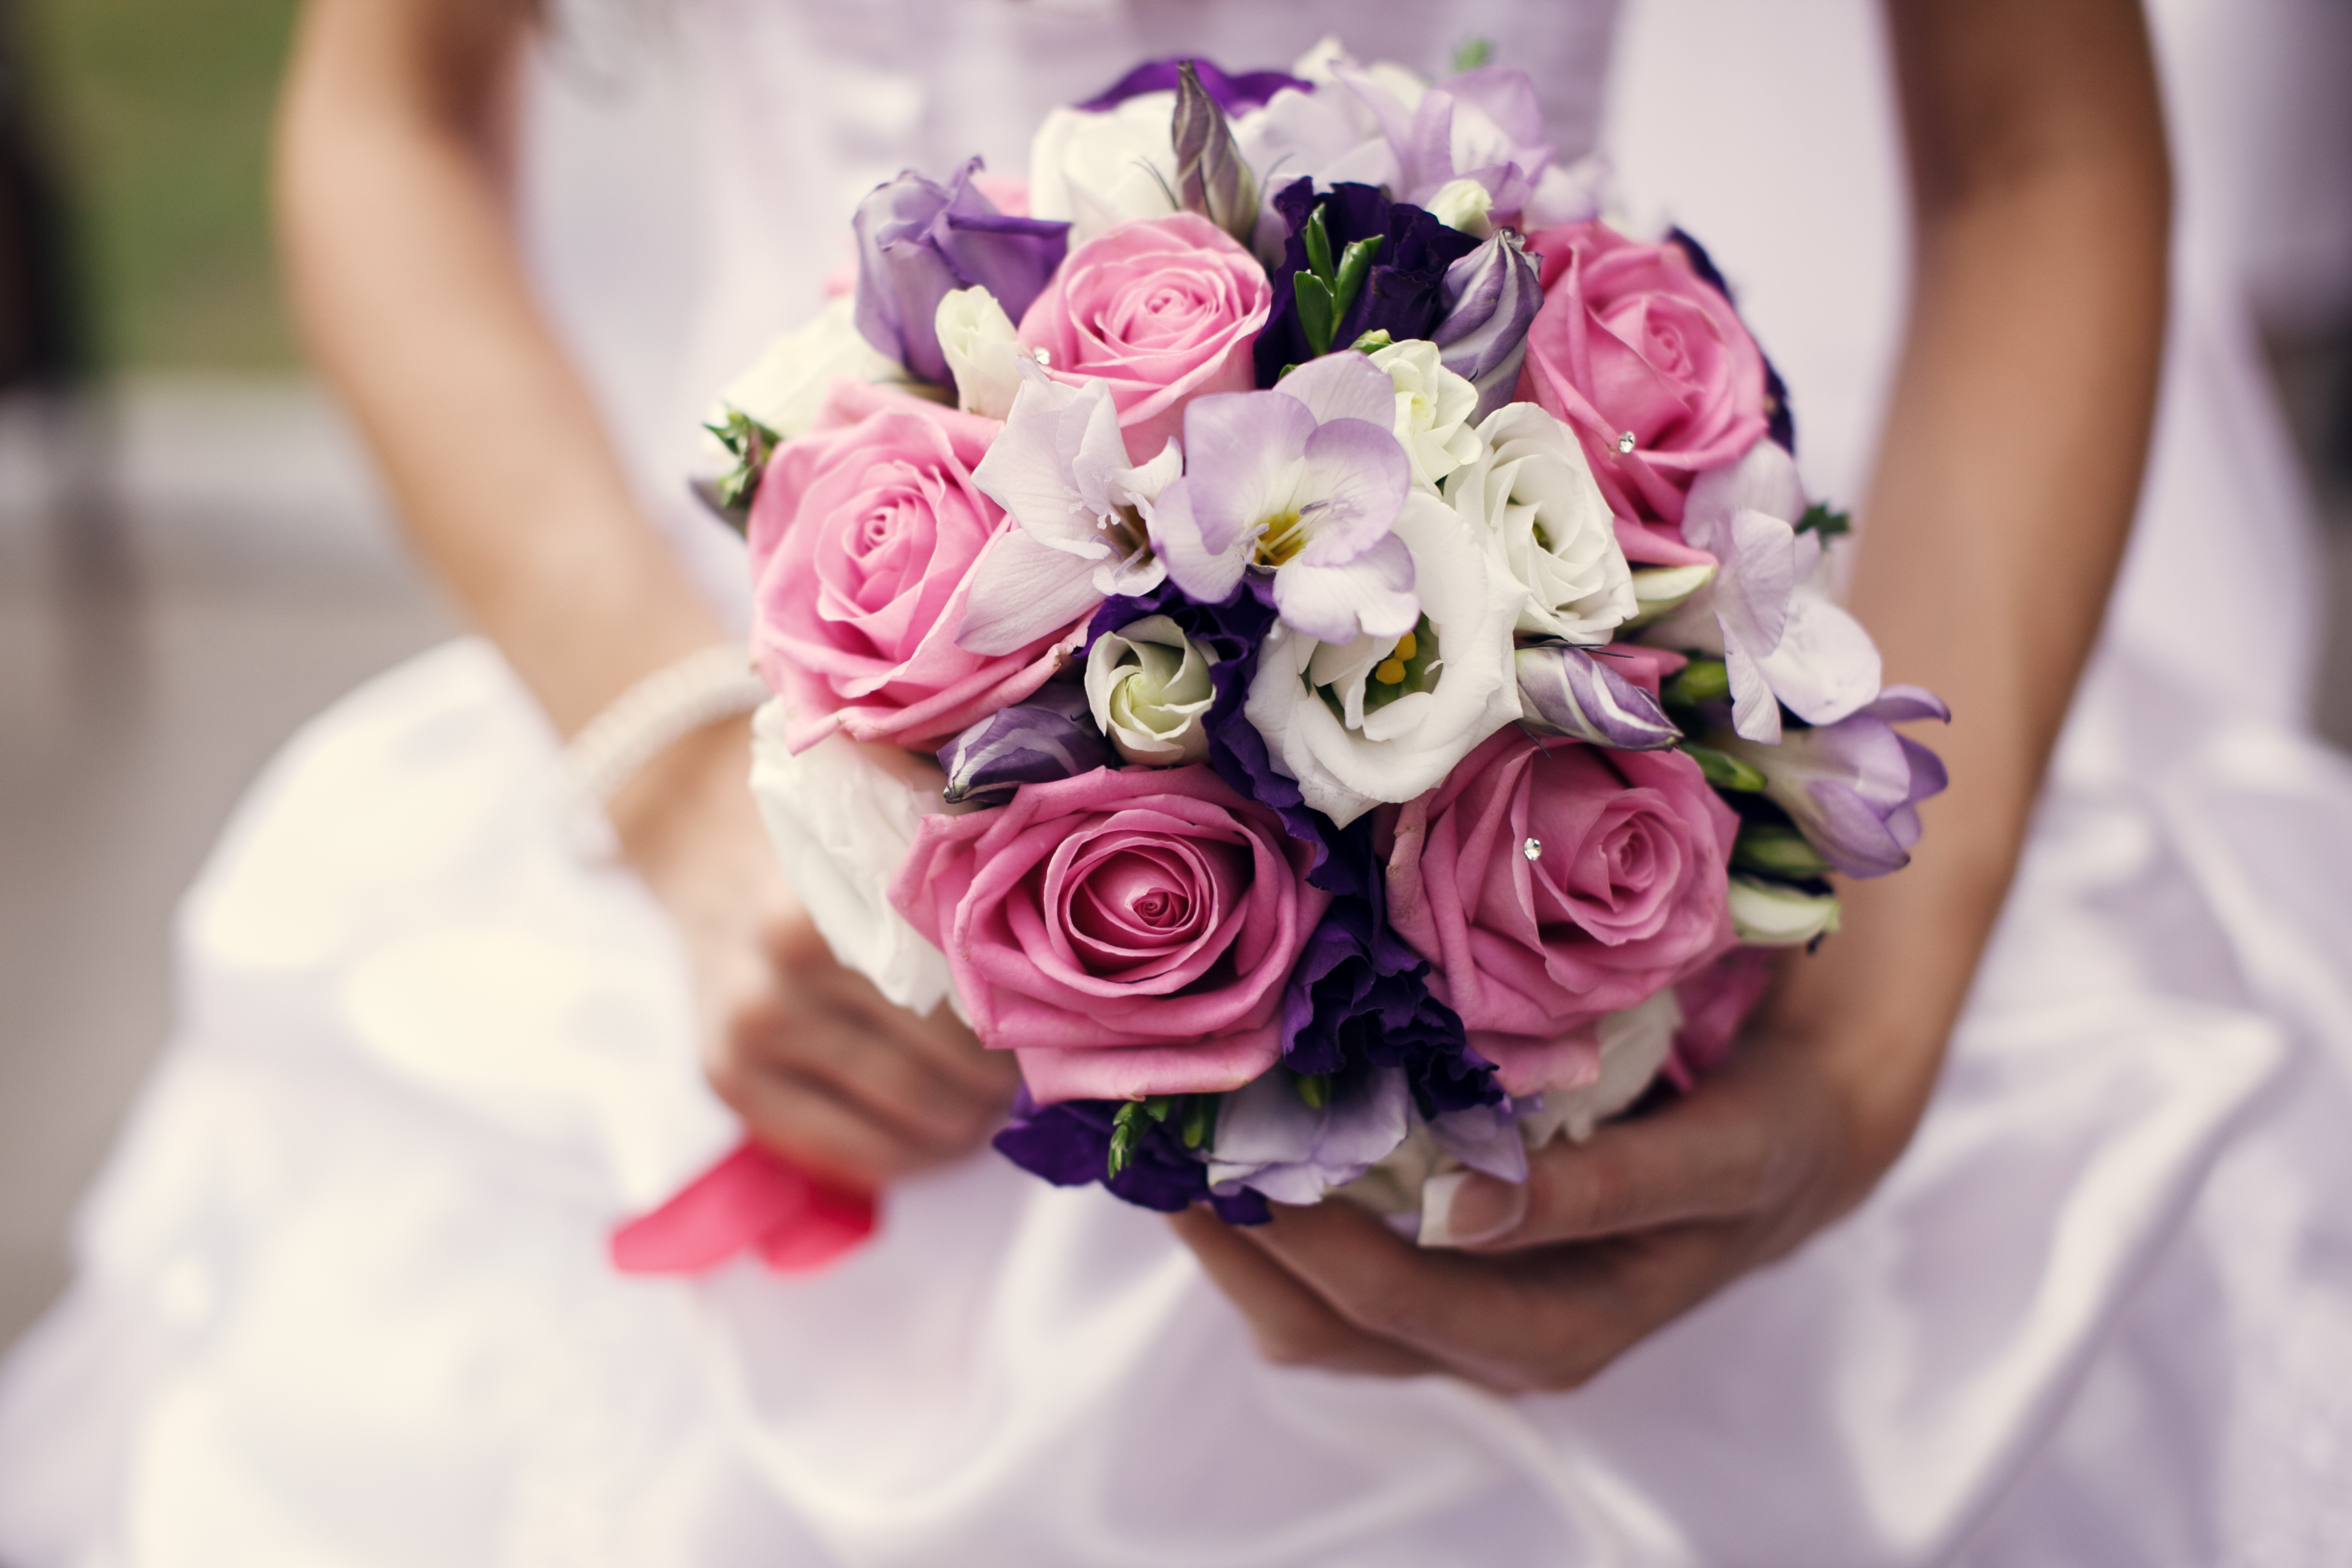 Your Personality According Your Bridal Bouquet